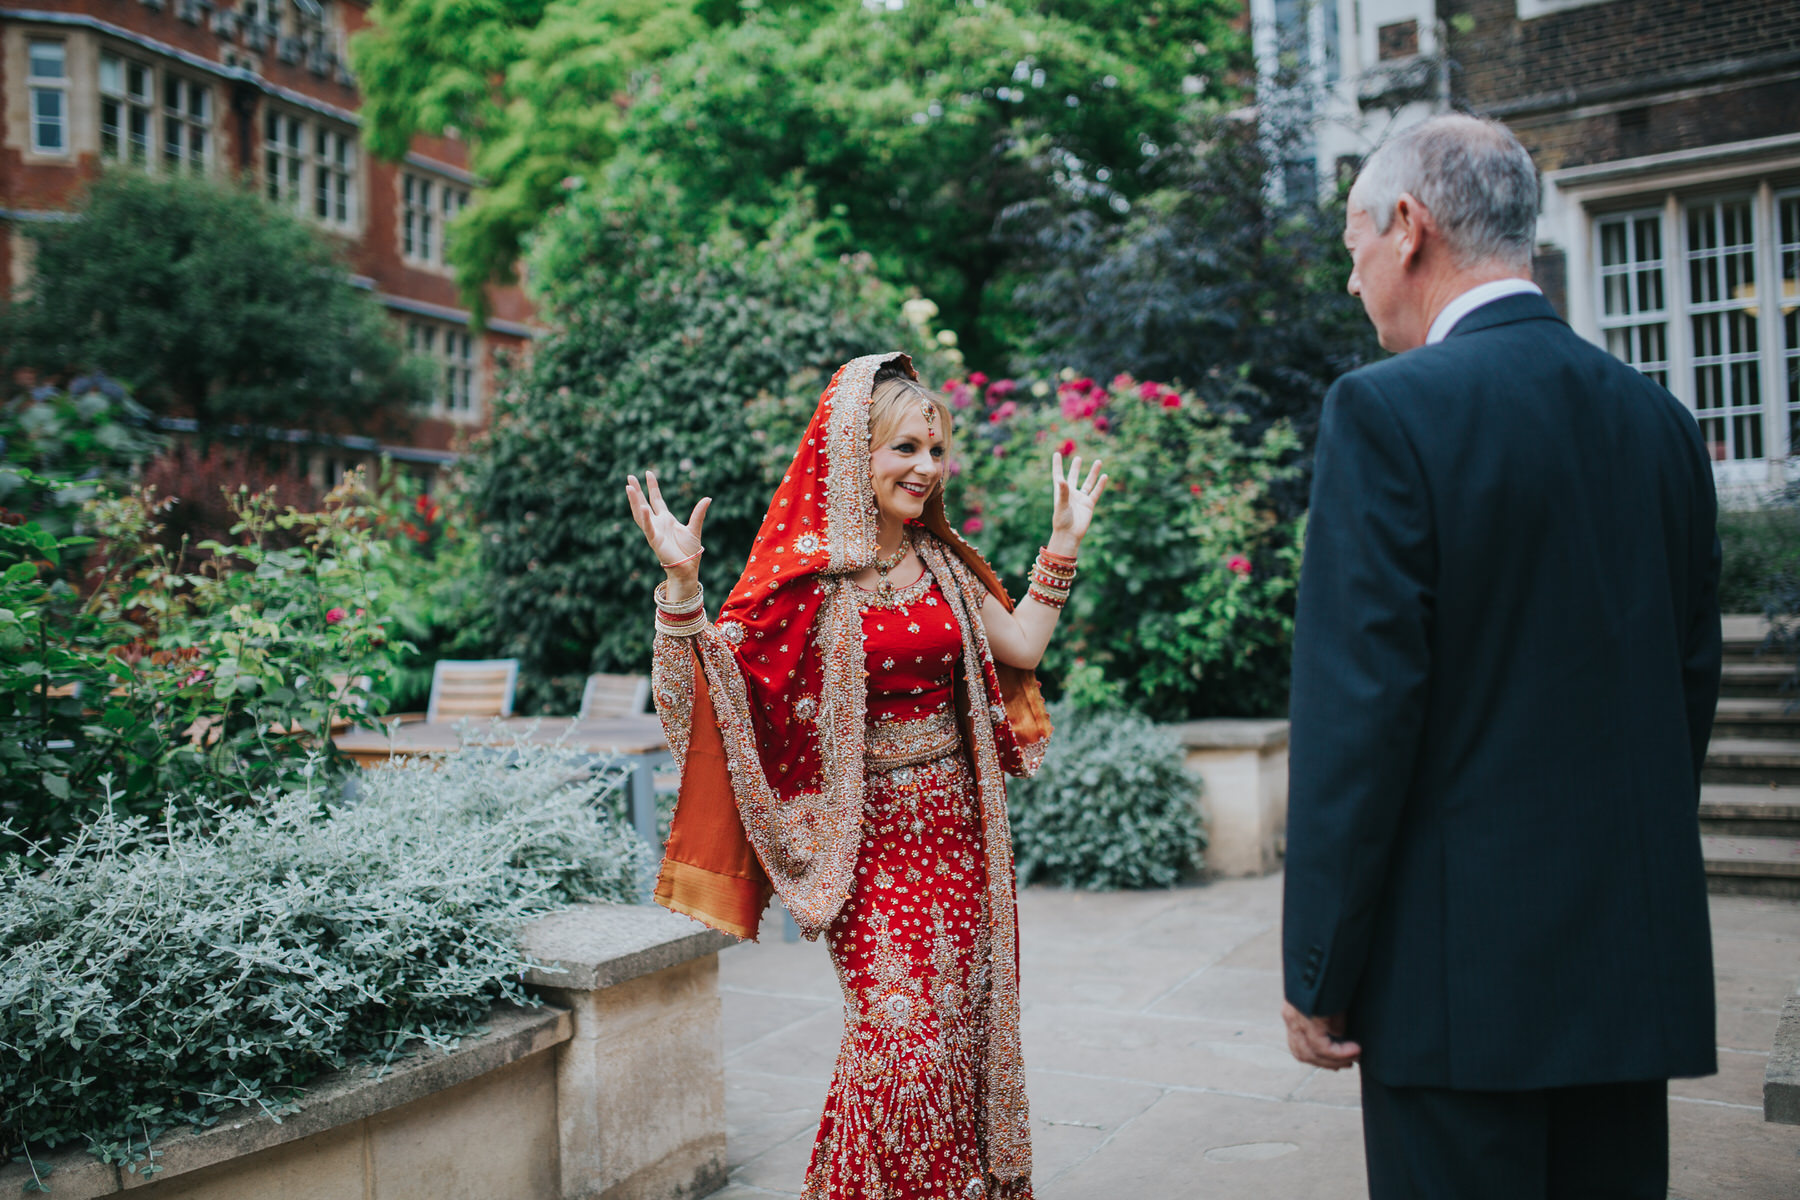 father daughter moment Middle Temple wedding.jpg